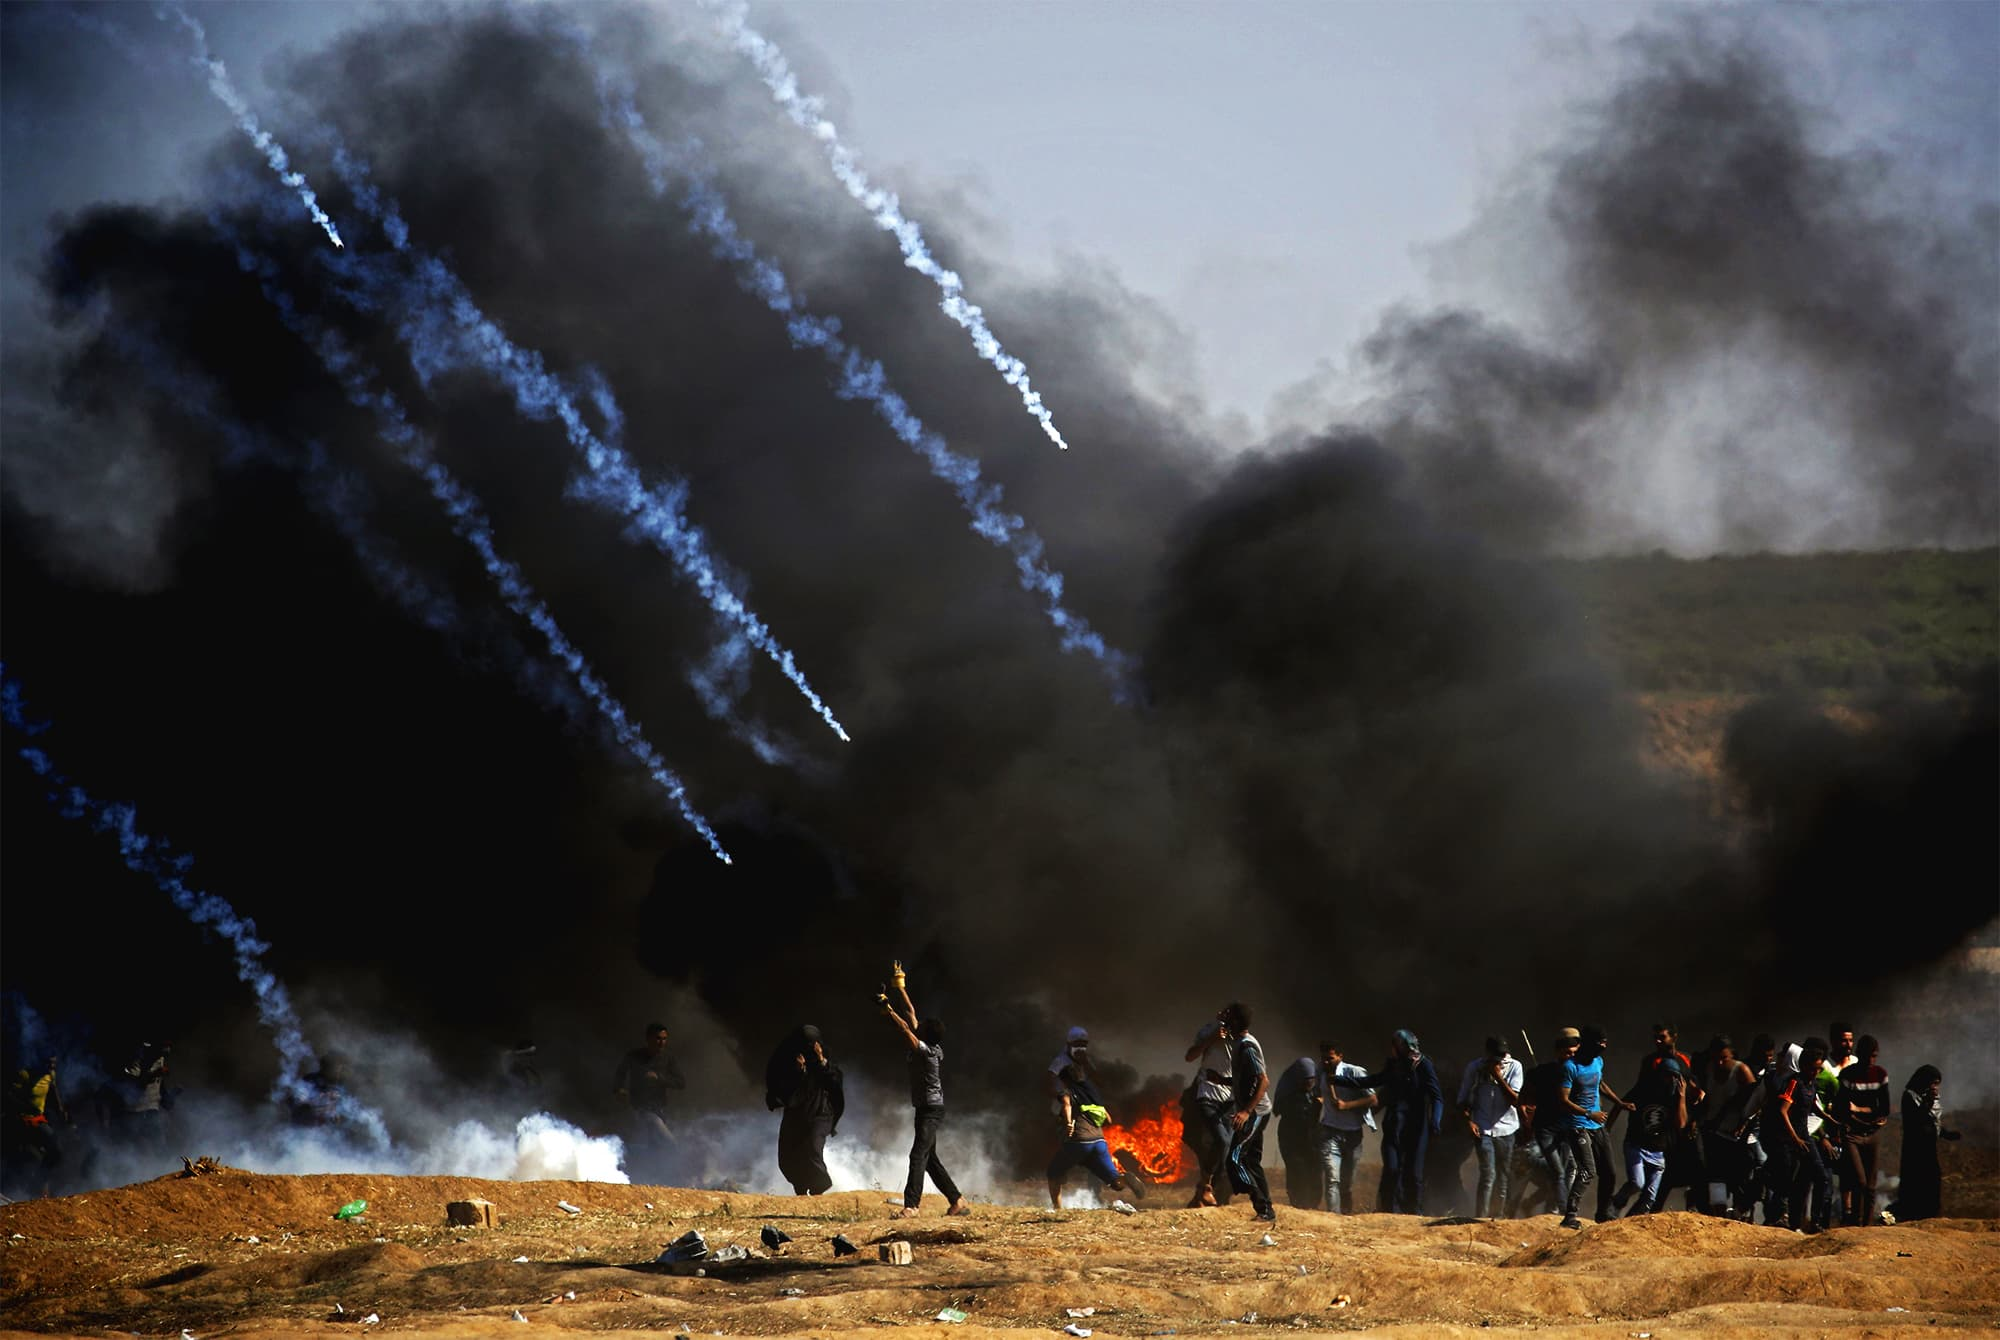 Tear gas is fired at protestors during clashes with Israeli forces near the border between the Gaza strip and Israel, east of Gaza City on May 14, 2018, following the the controversial move to Jerusalem of the United States embassy.  Fifty-two Palestinians were killed by Israeli fire during violent clashes on the Gaza-Israel border coinciding with the opening of the US embassy in Jerusalem, the health ministry in the strip announced. ─ AFP